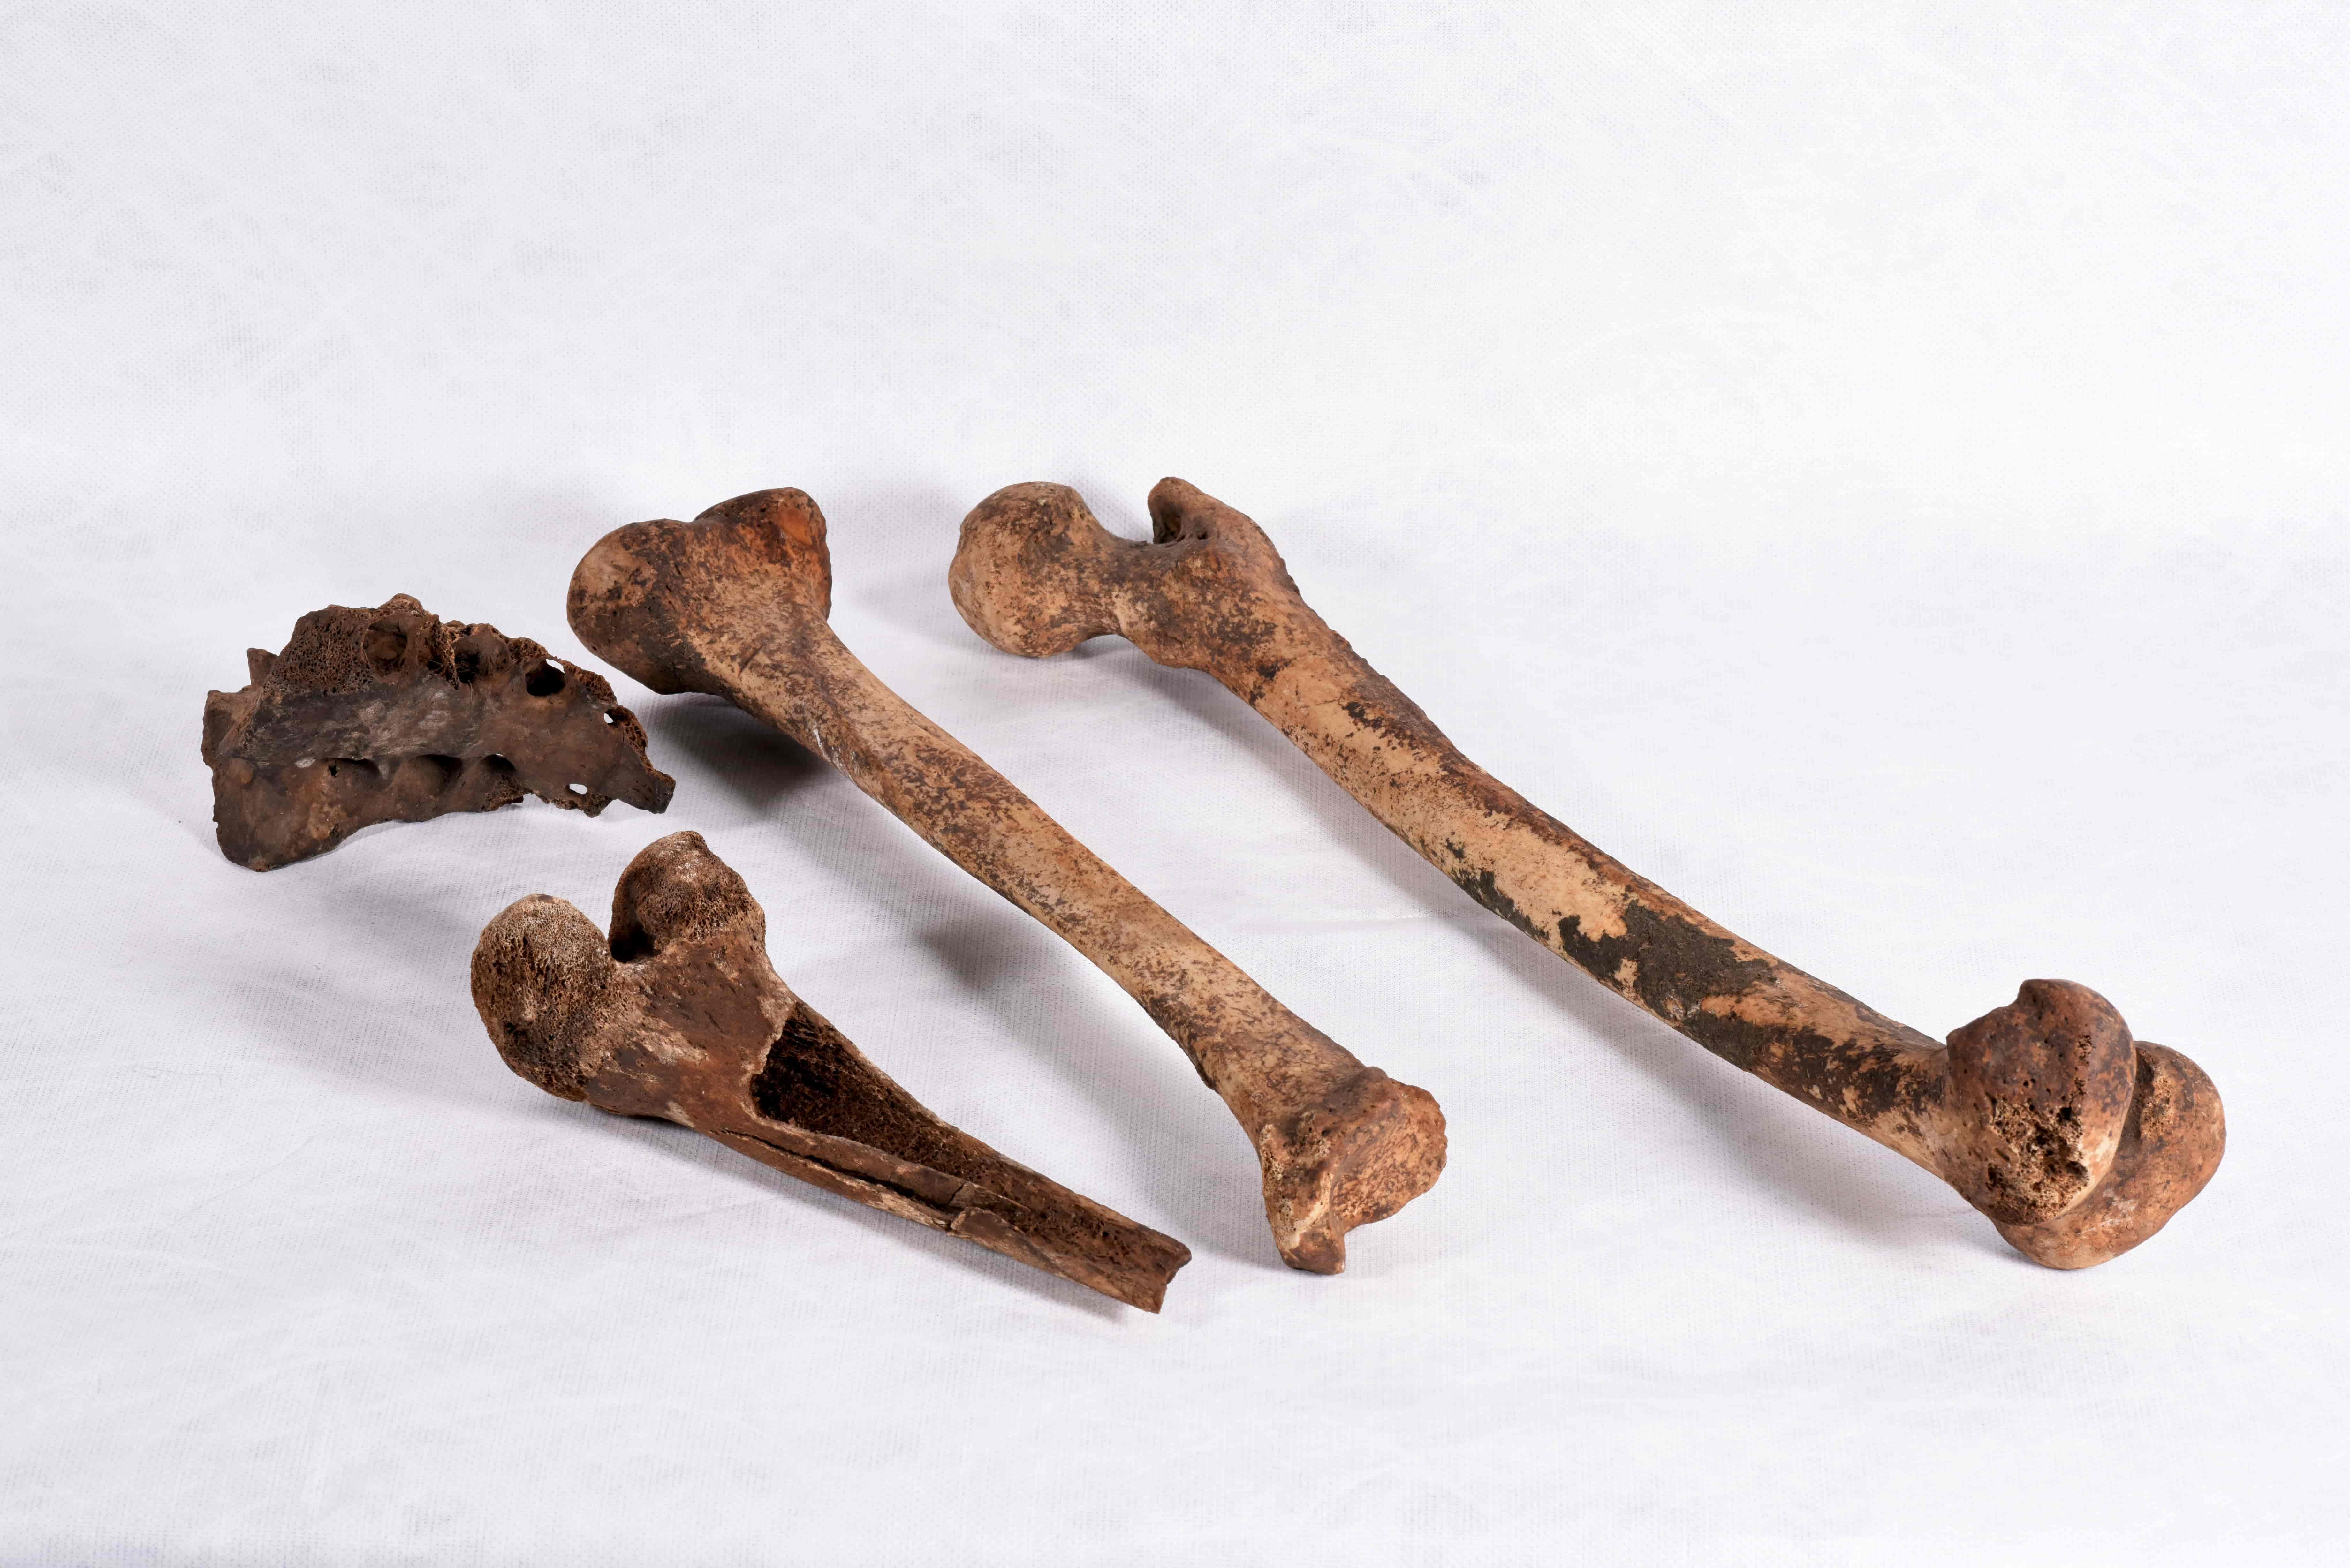 Two complete leg bones and two fragments of leg bones on a white background